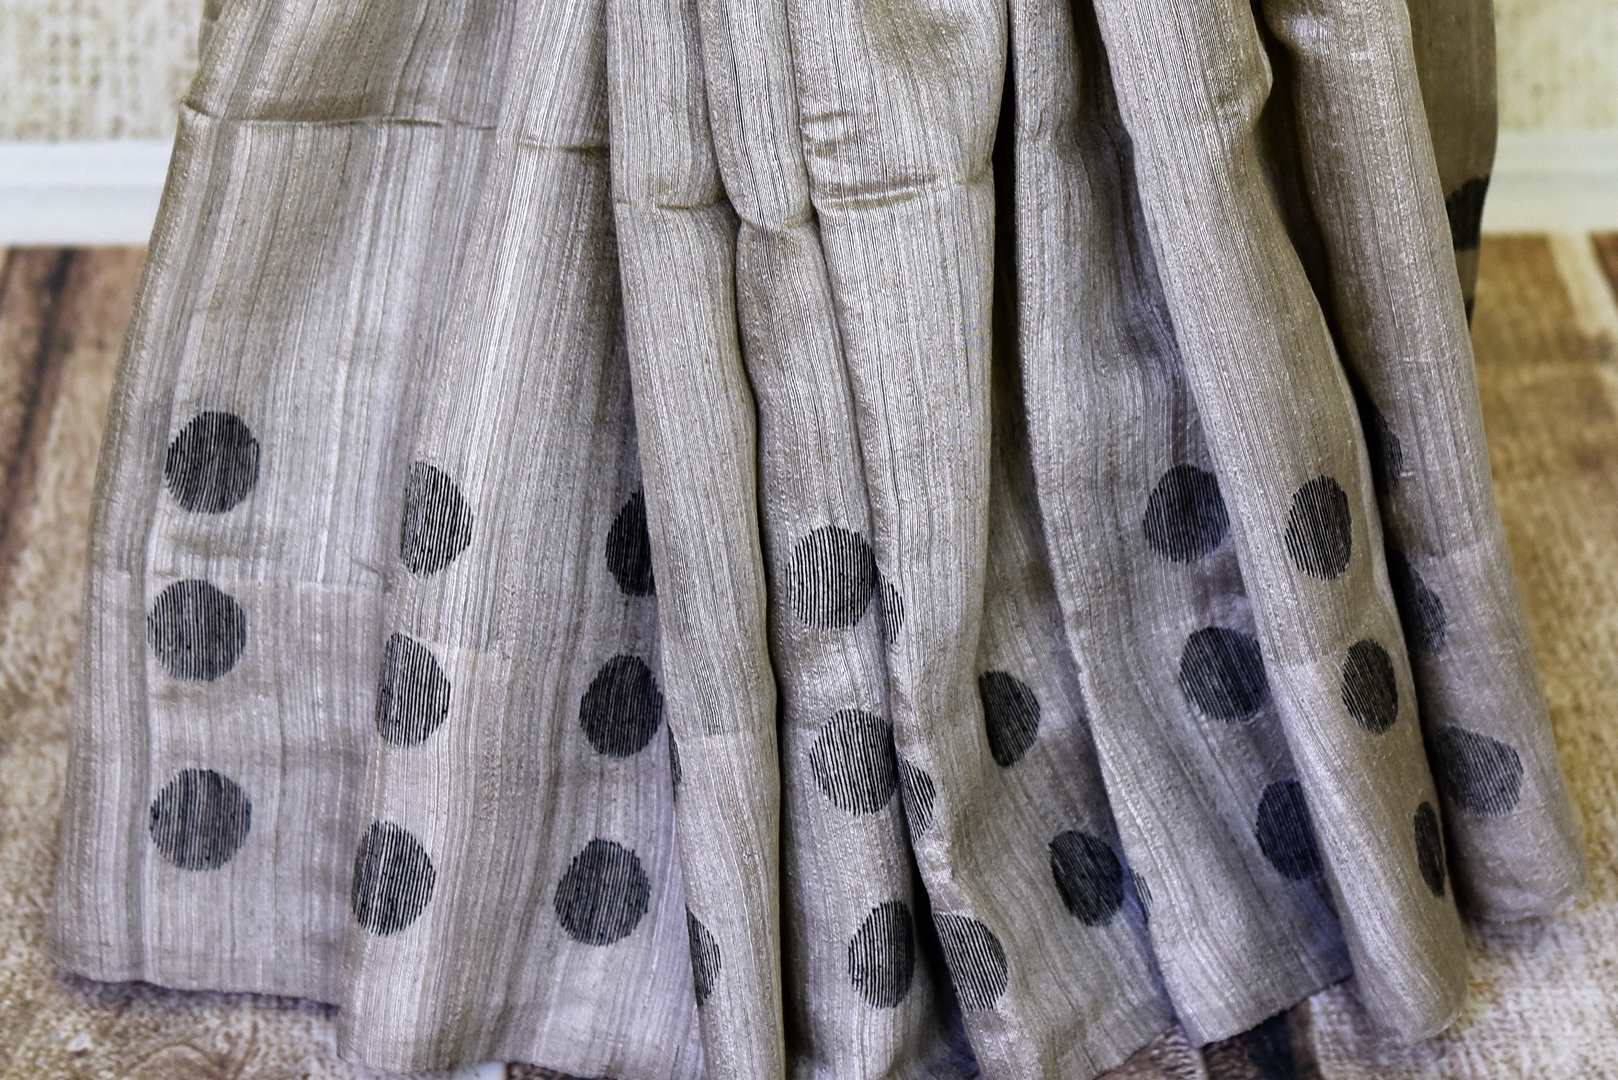 Buy grey matka silk saree online in USA with polka dots. Redefine your ethnic sartorial choice with a splendid variety of handwoven silk saris from Pure Elegance Indian clothing store in USA.-pleats